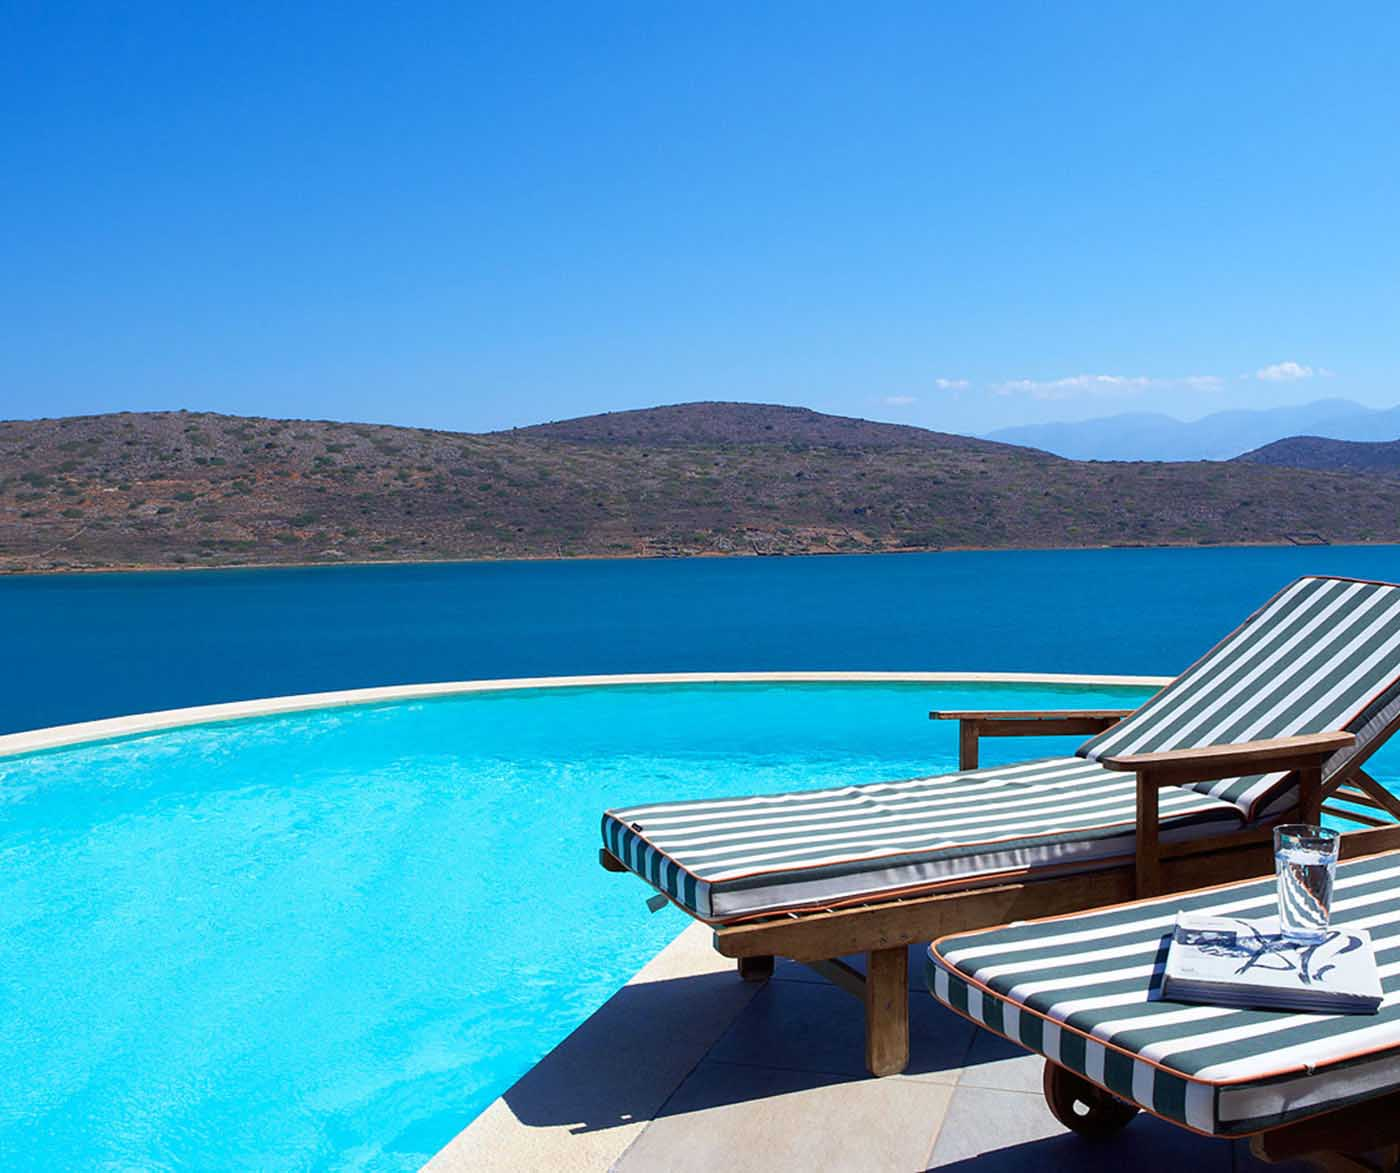 Elounda hotels & resorts, 50% discount for early bookings, Elounda, Lassithi, Crete, Greece